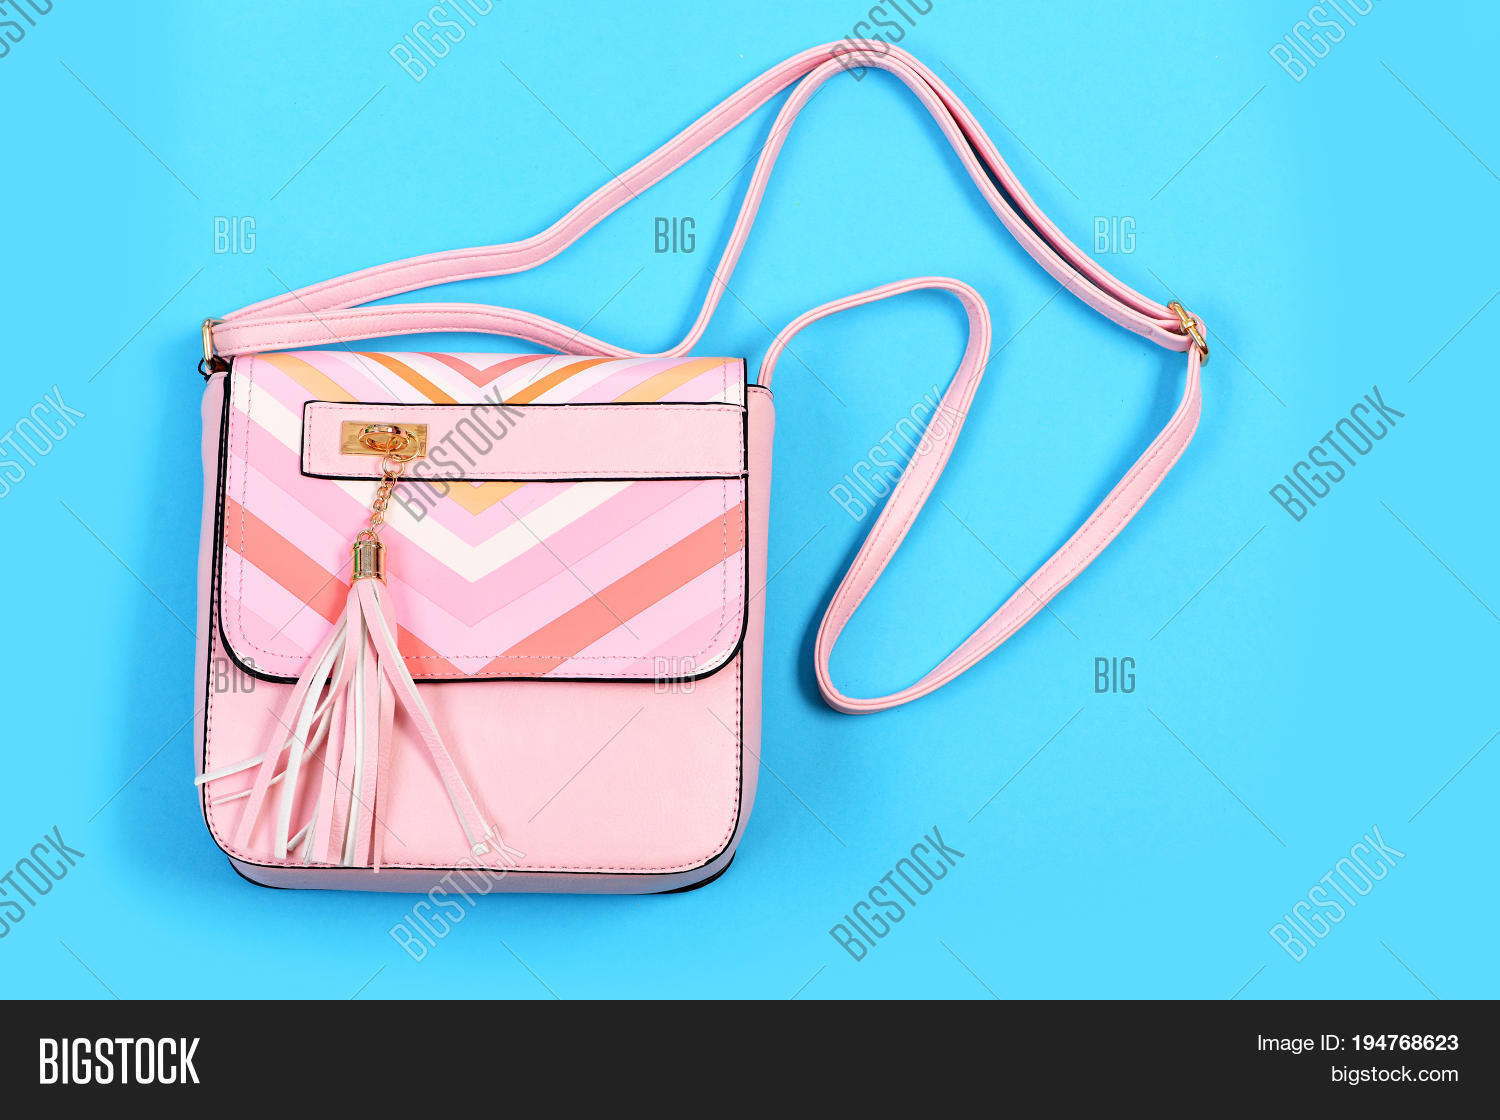 f7981a3aed Purse in light pink color with stripes. Handbag for women isolated on cyan  blue background. Accessory in modern style made of leather. Fashion and  glamour ...